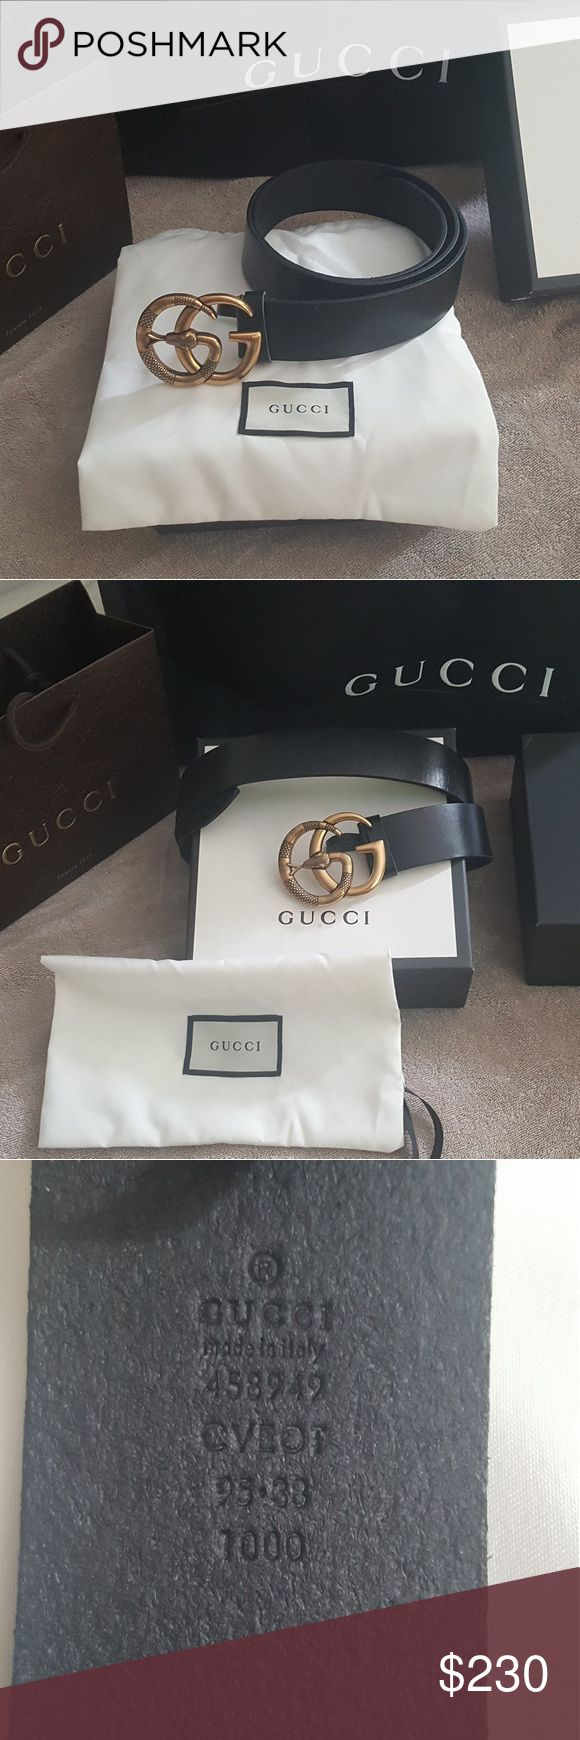 Brand new Gucci belt black Brand new Leather belt with double G buckle with snake comes with box and dust bag Gucci Accessories Belts